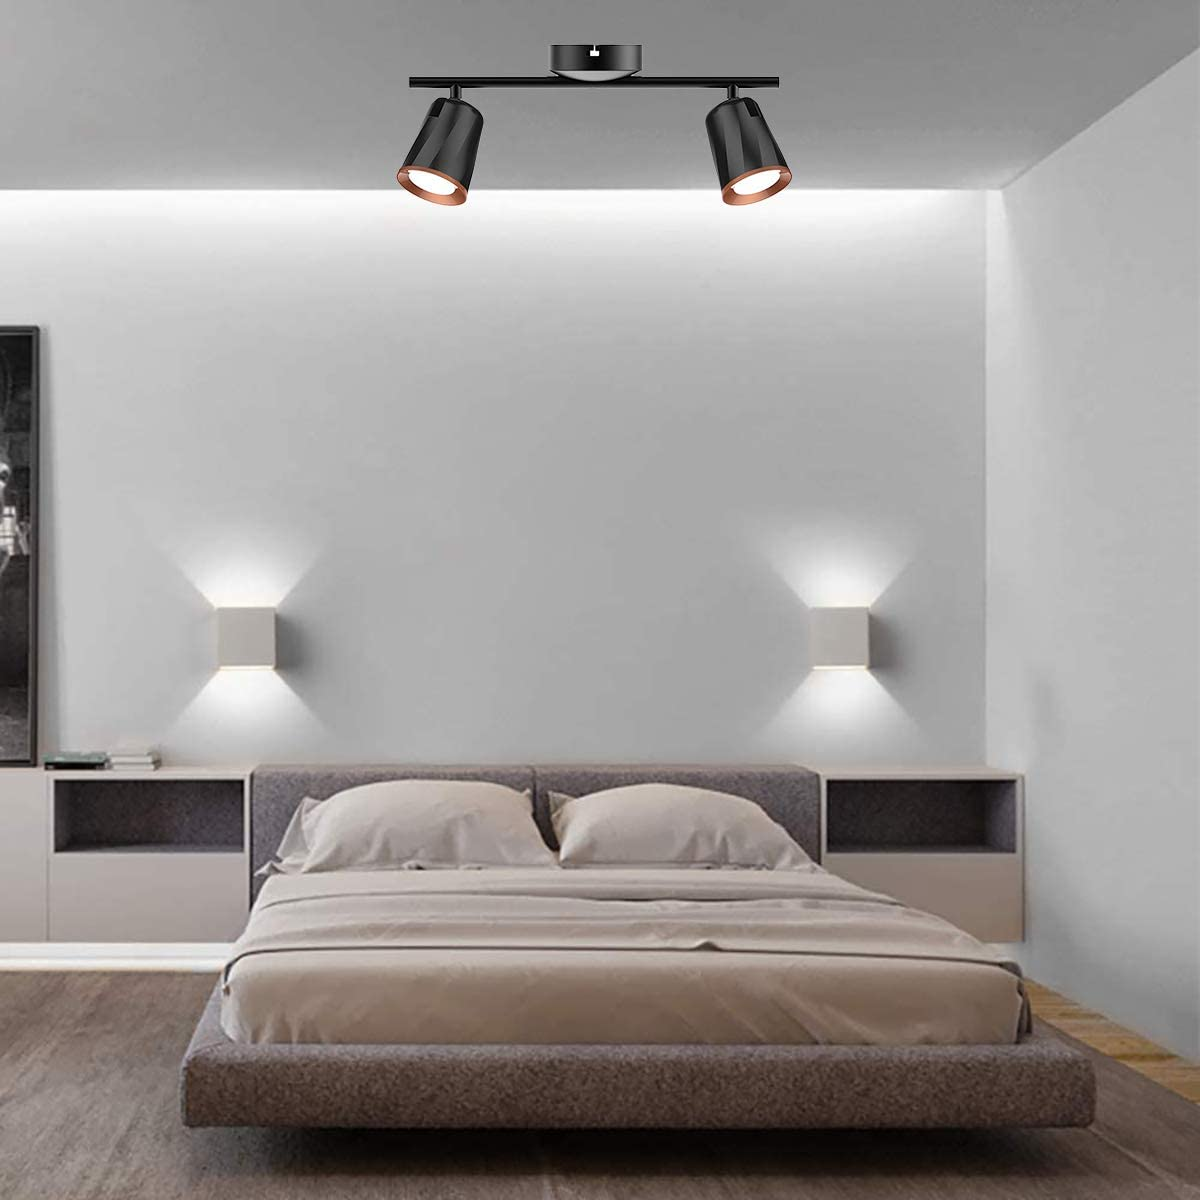 Cgc Indoor Adjustable Black Double Twin Ceiling Spot Led Light Bar 4000k Natural White Colour Temperature Bedroom Kitchen Lounge Dining Room Ceiling Spots Ceiling Lighting Umoonproductions Com